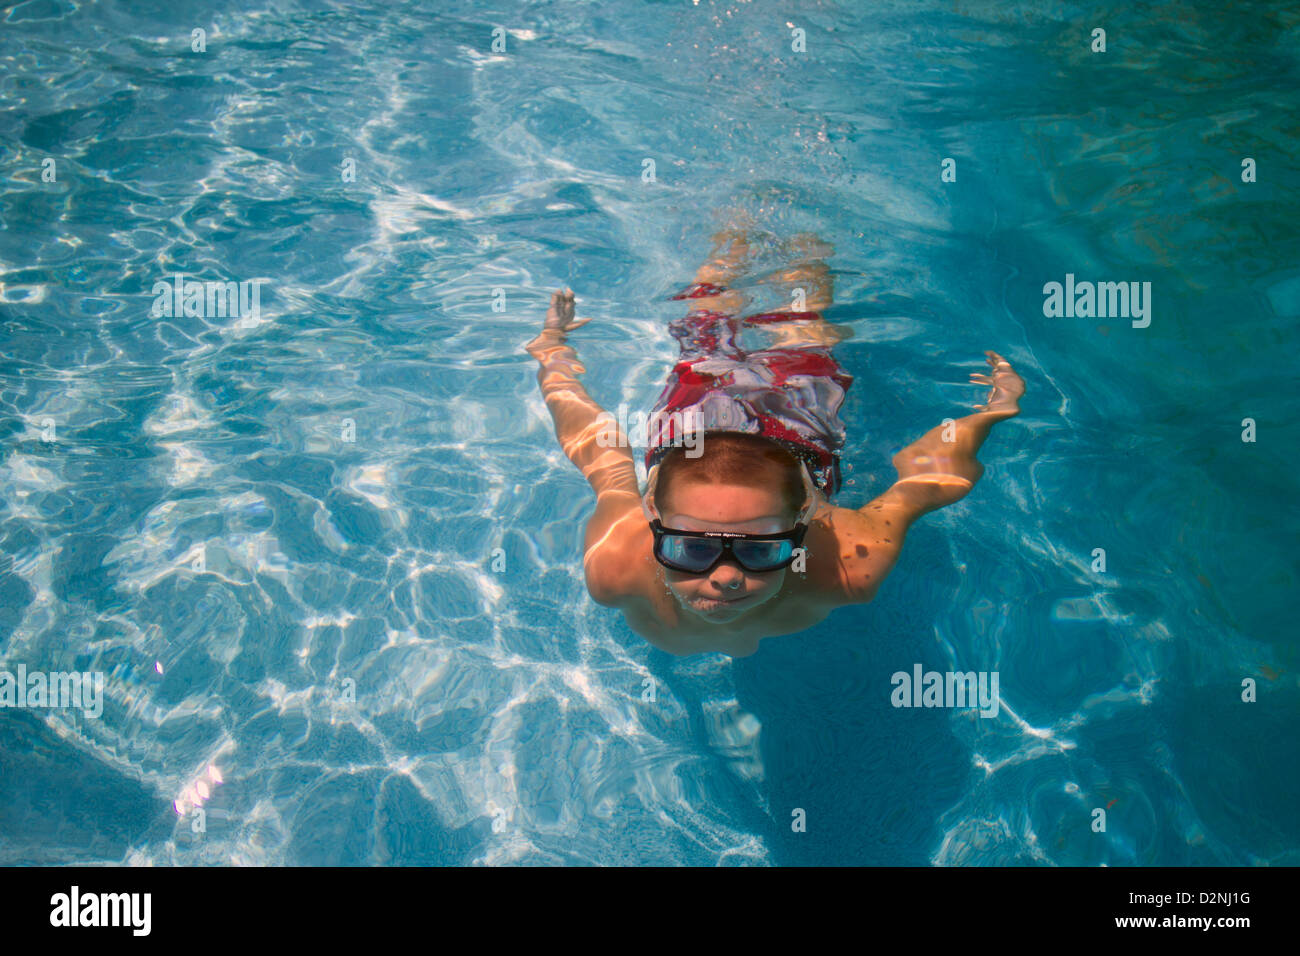 Young child swimming underwater - Stock Image